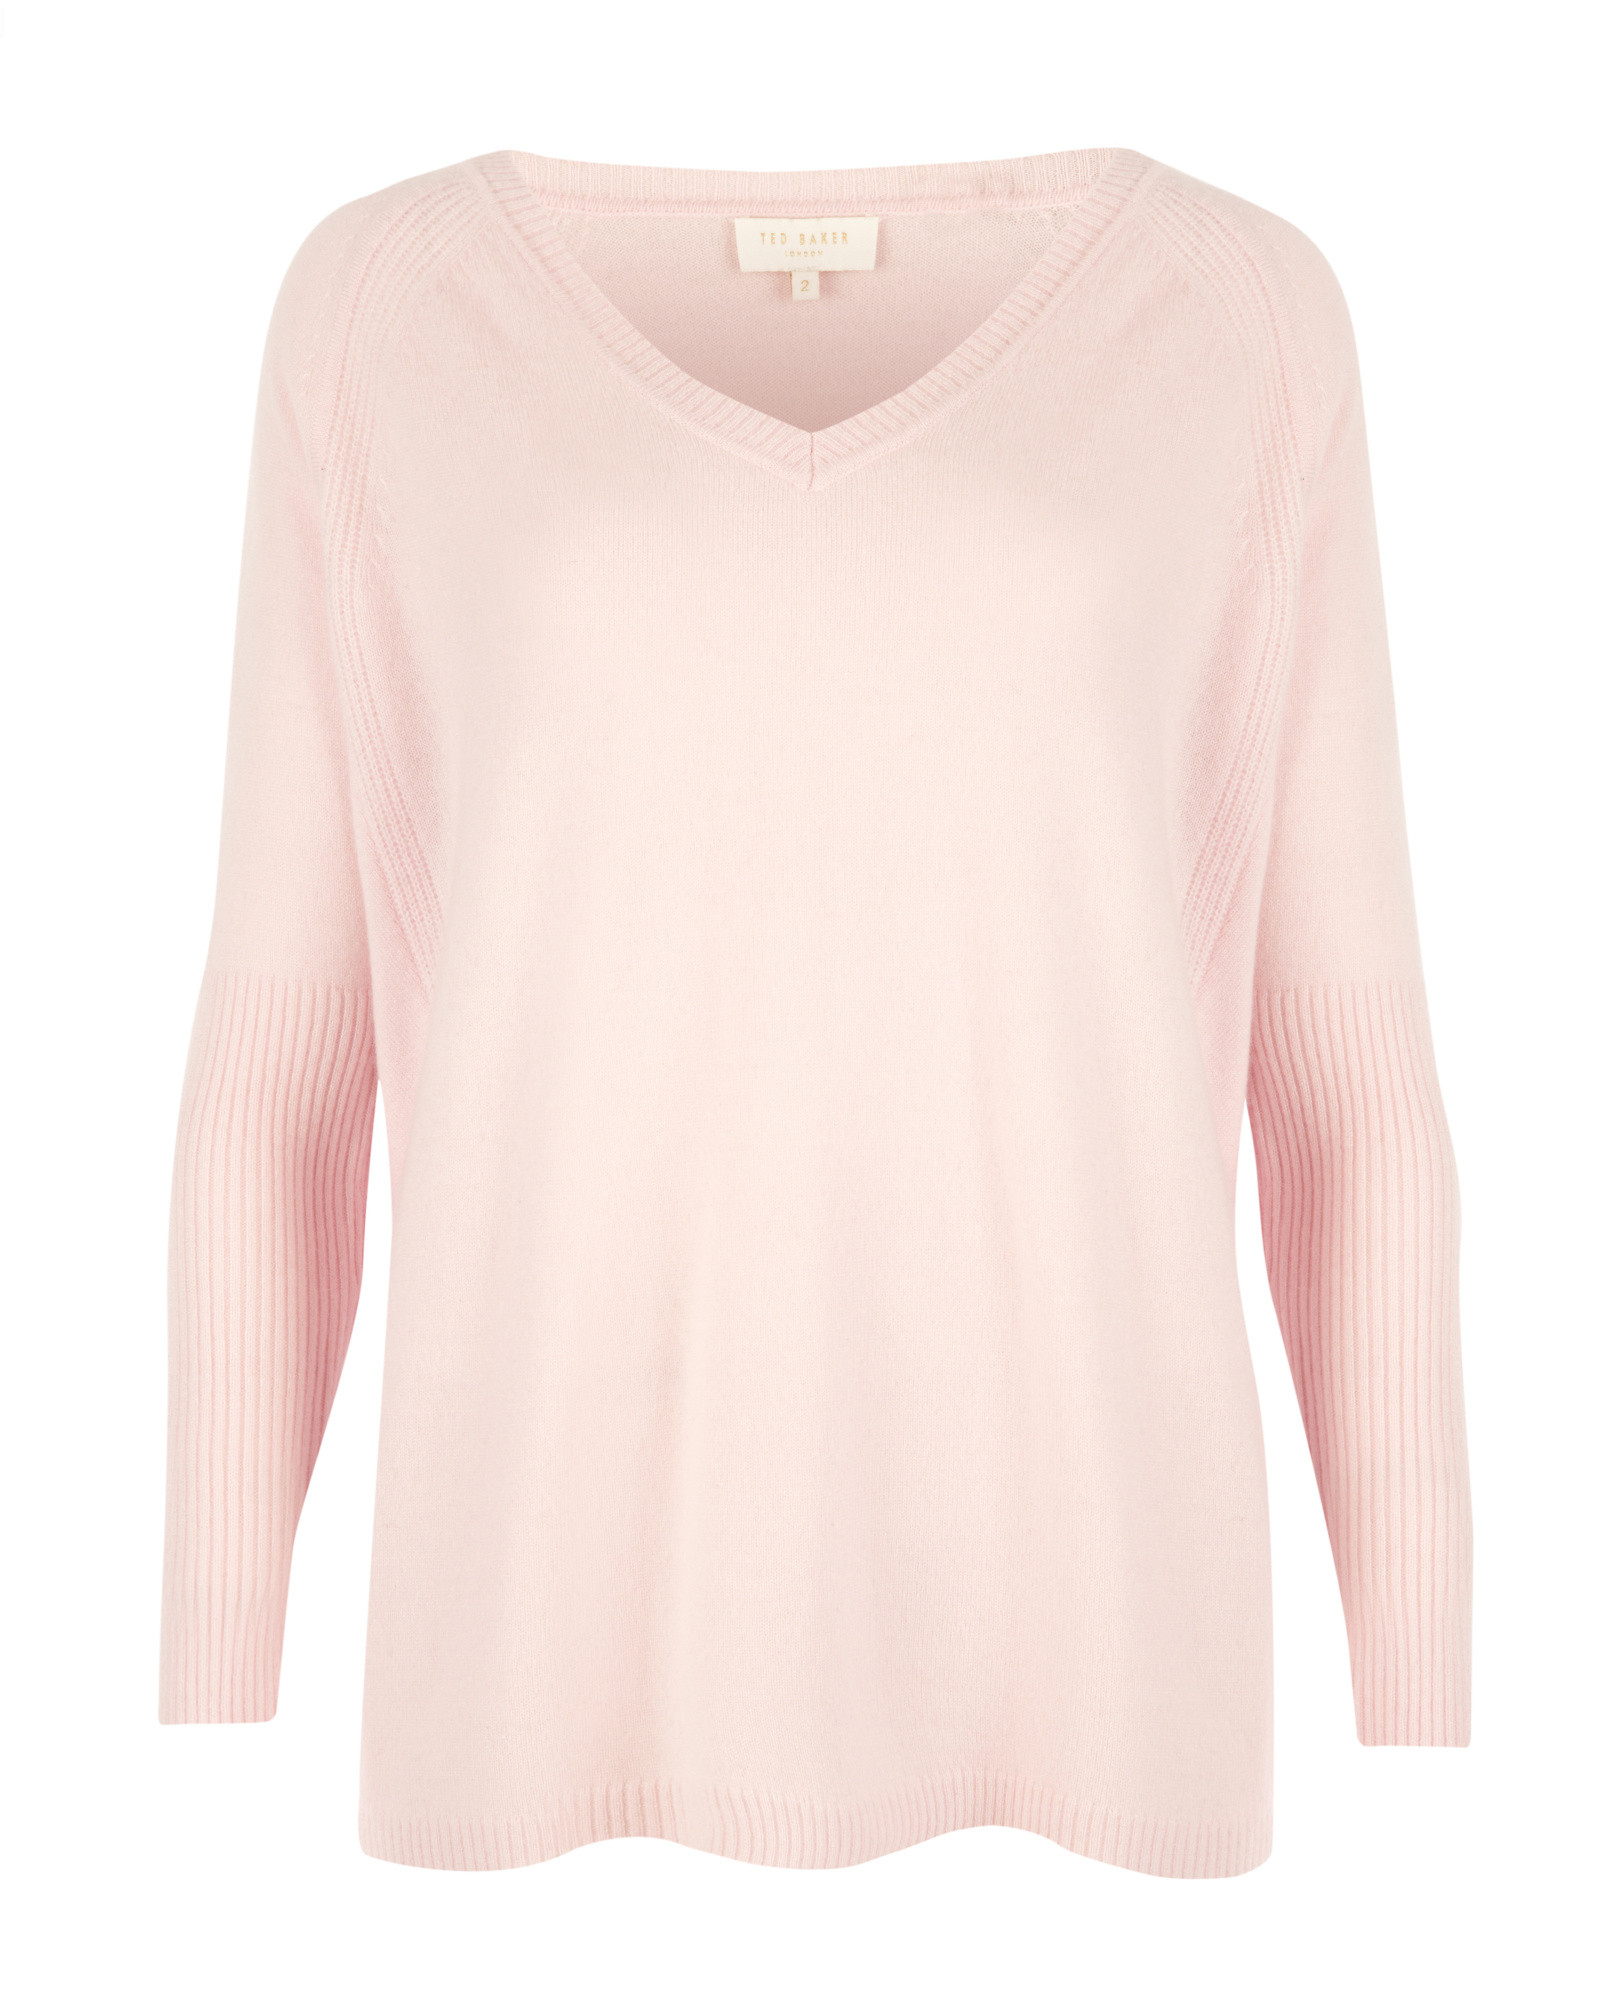 Ted baker Cashmere Sweater in Pink | Lyst